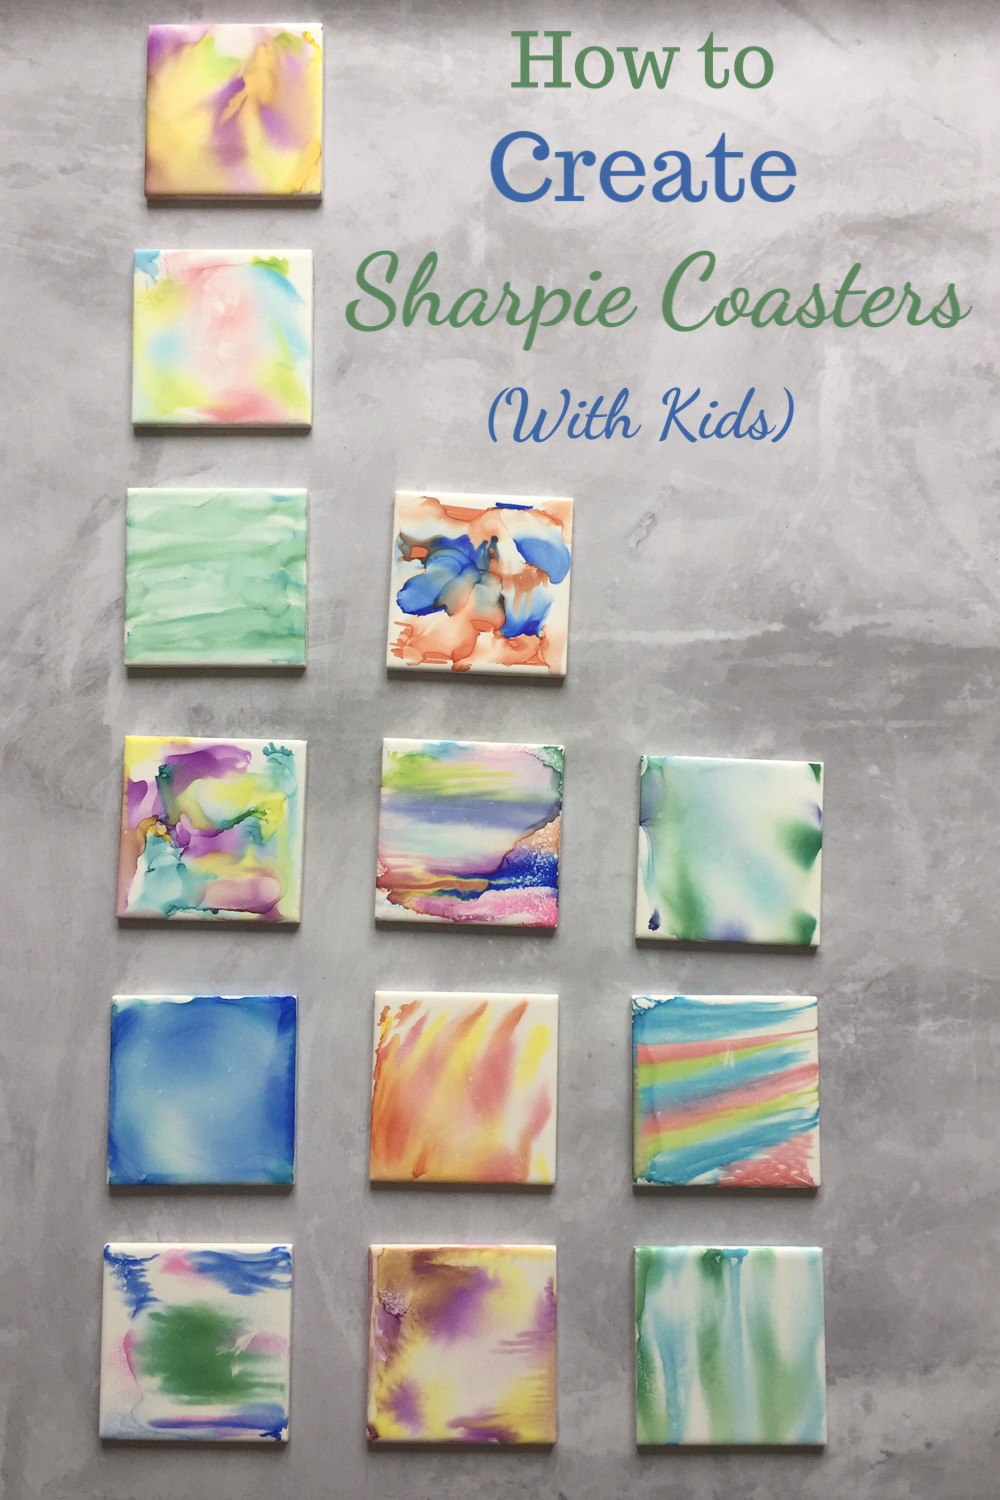 How to create sharpie coasters with kids